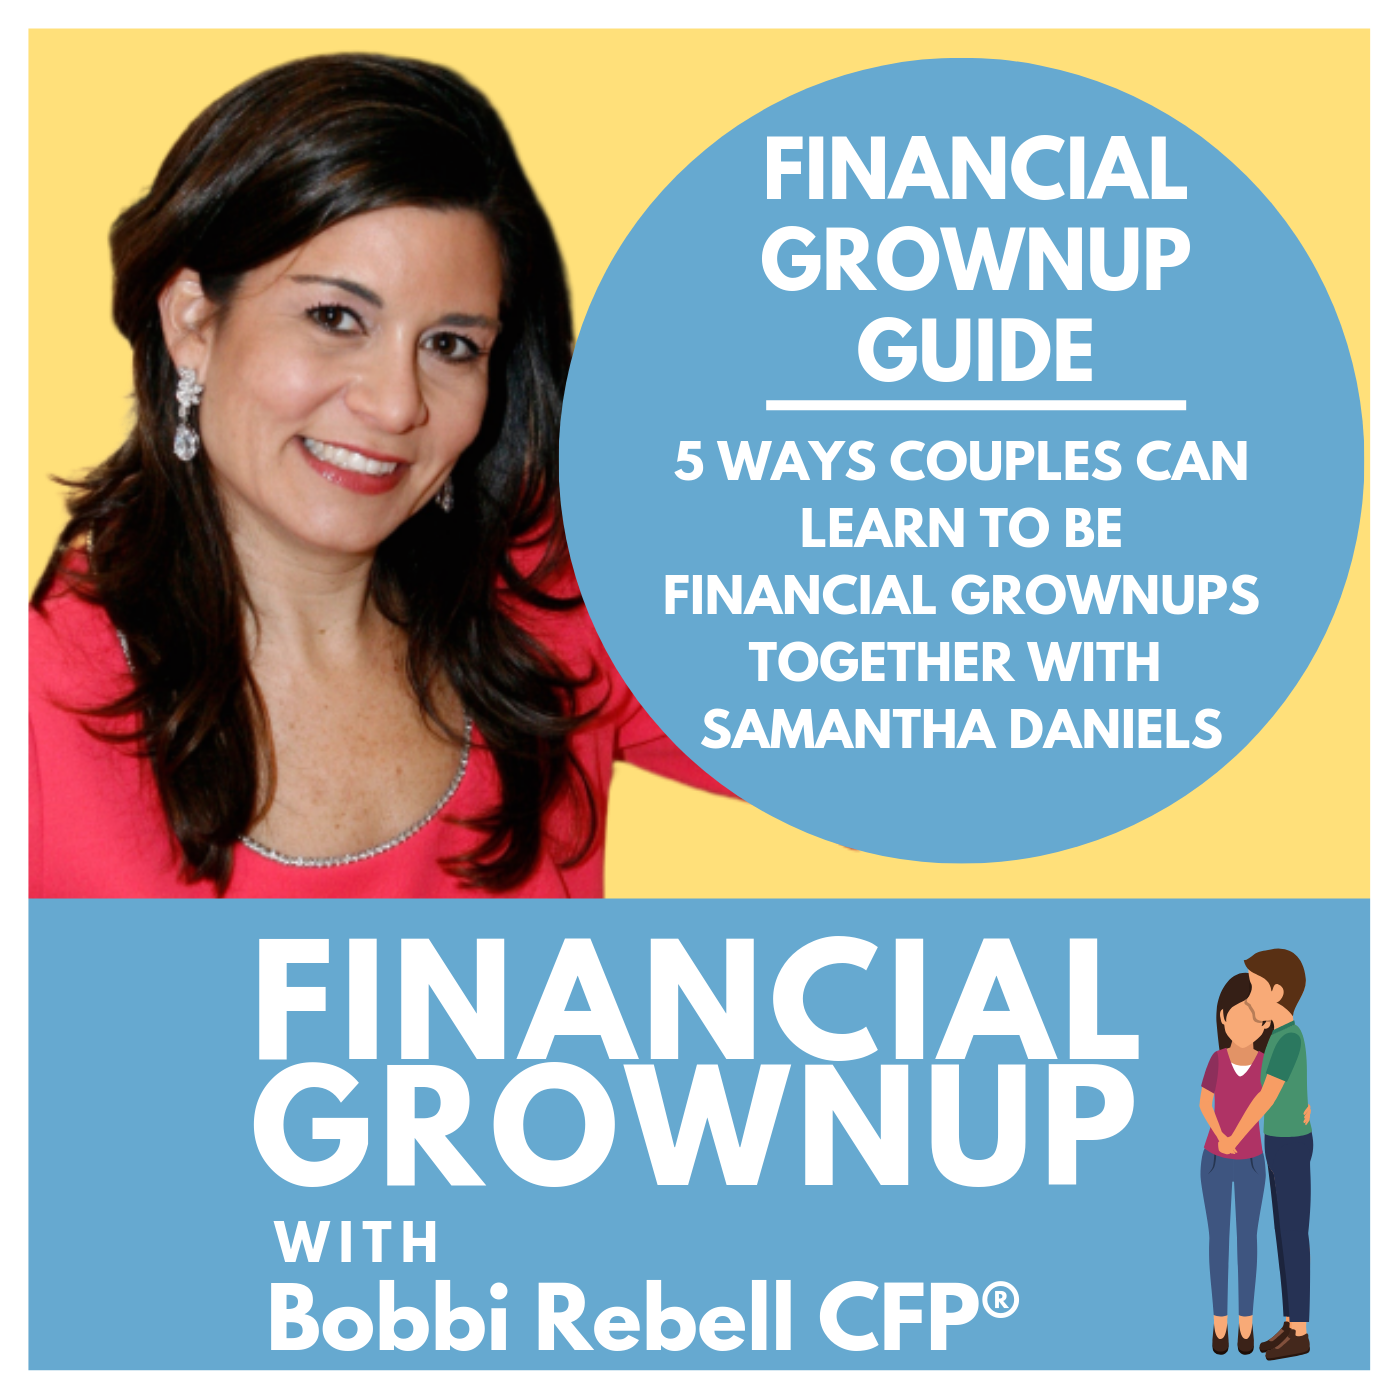 FGG - Financial Grownup Couples Instagram